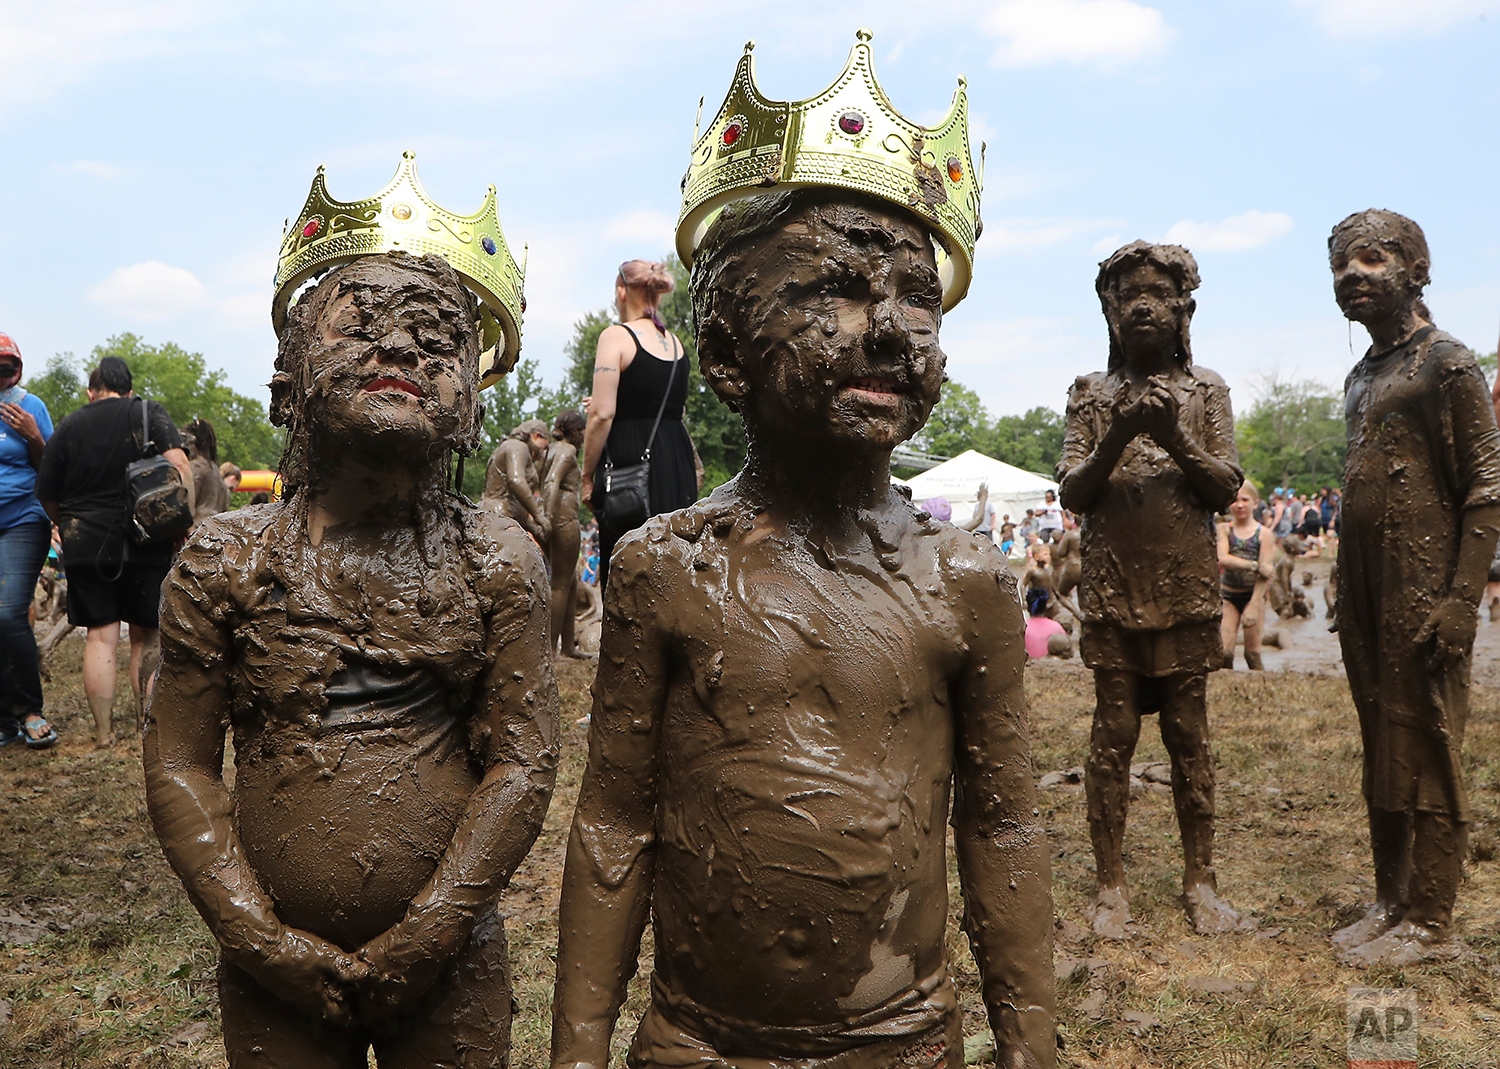 Molly Kofahl, 4, left, and Charles Daviskiba, 3, pose after being crowned Mud Day Queen and King during Mud Day at the Nankin Mills Park, Tuesday, July 10, 2018, in Westland, Mich. (AP Photo/Carlos Osorio)